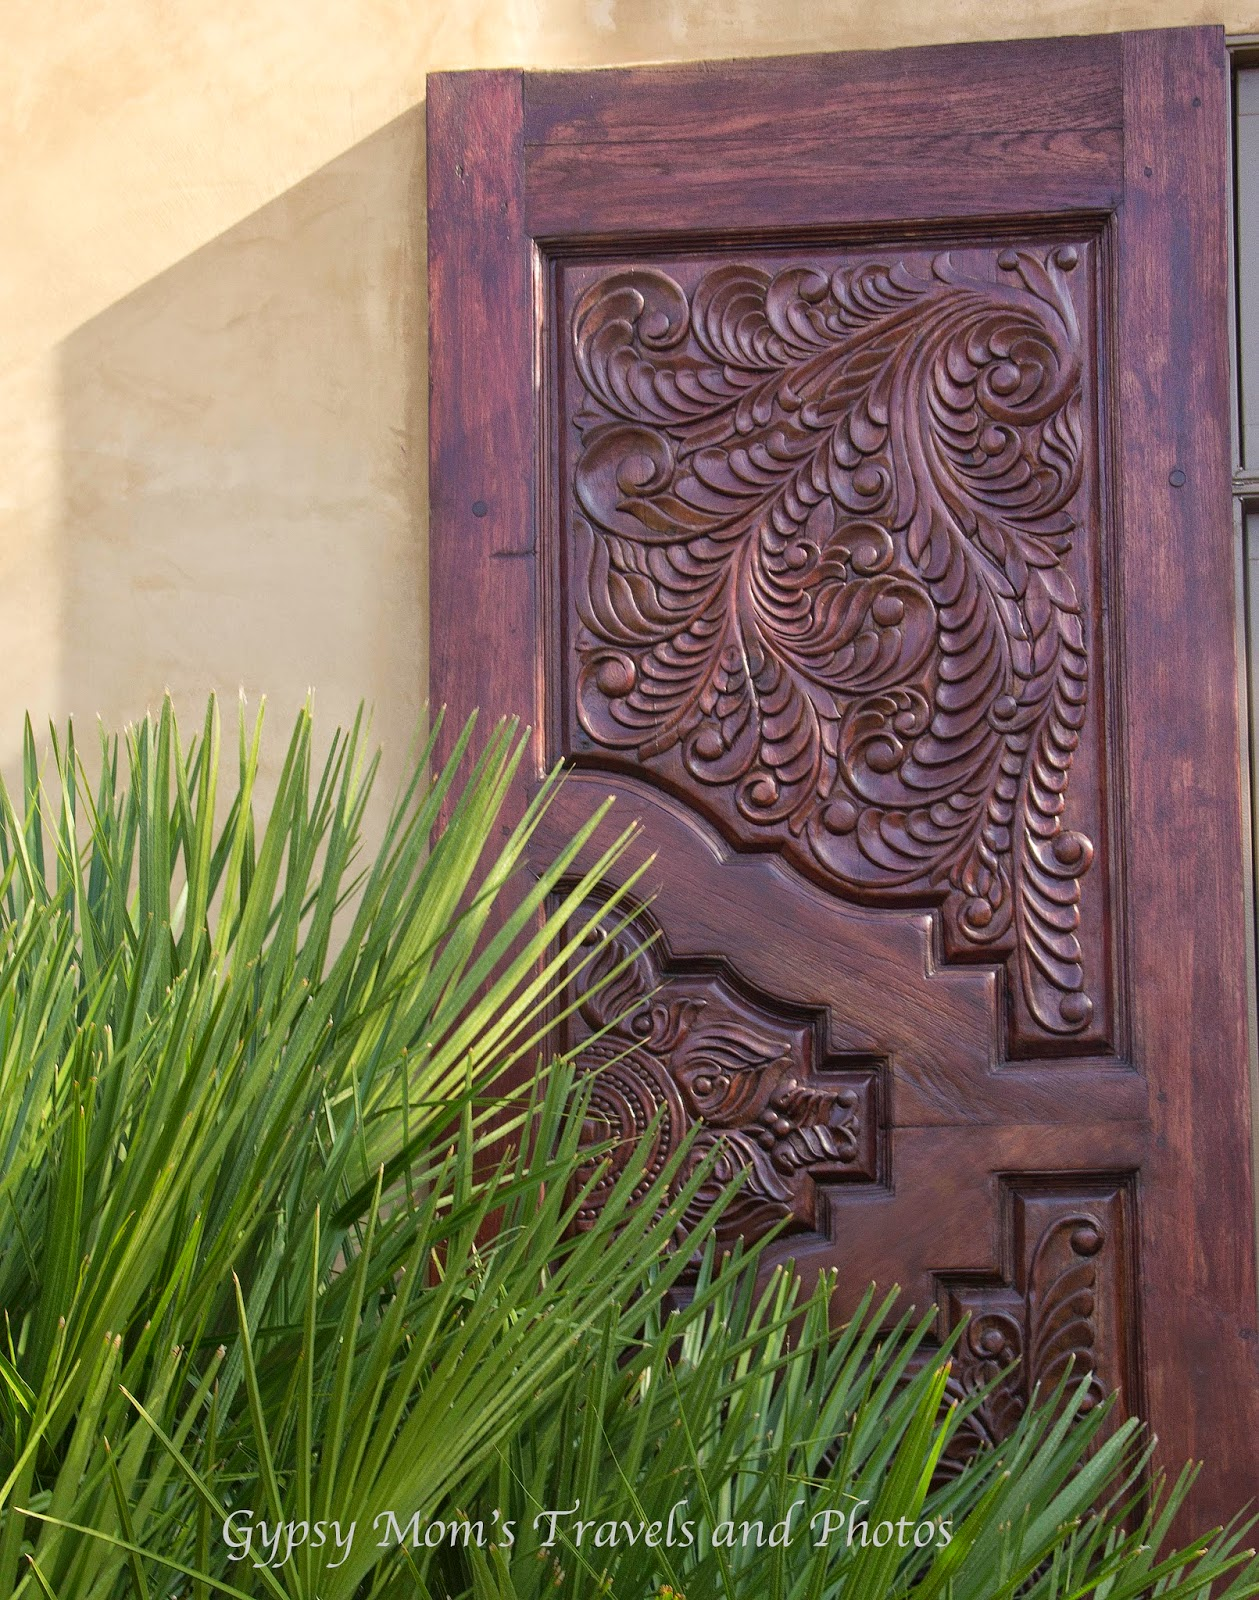 Wood decorations on a house in Corona del Mar